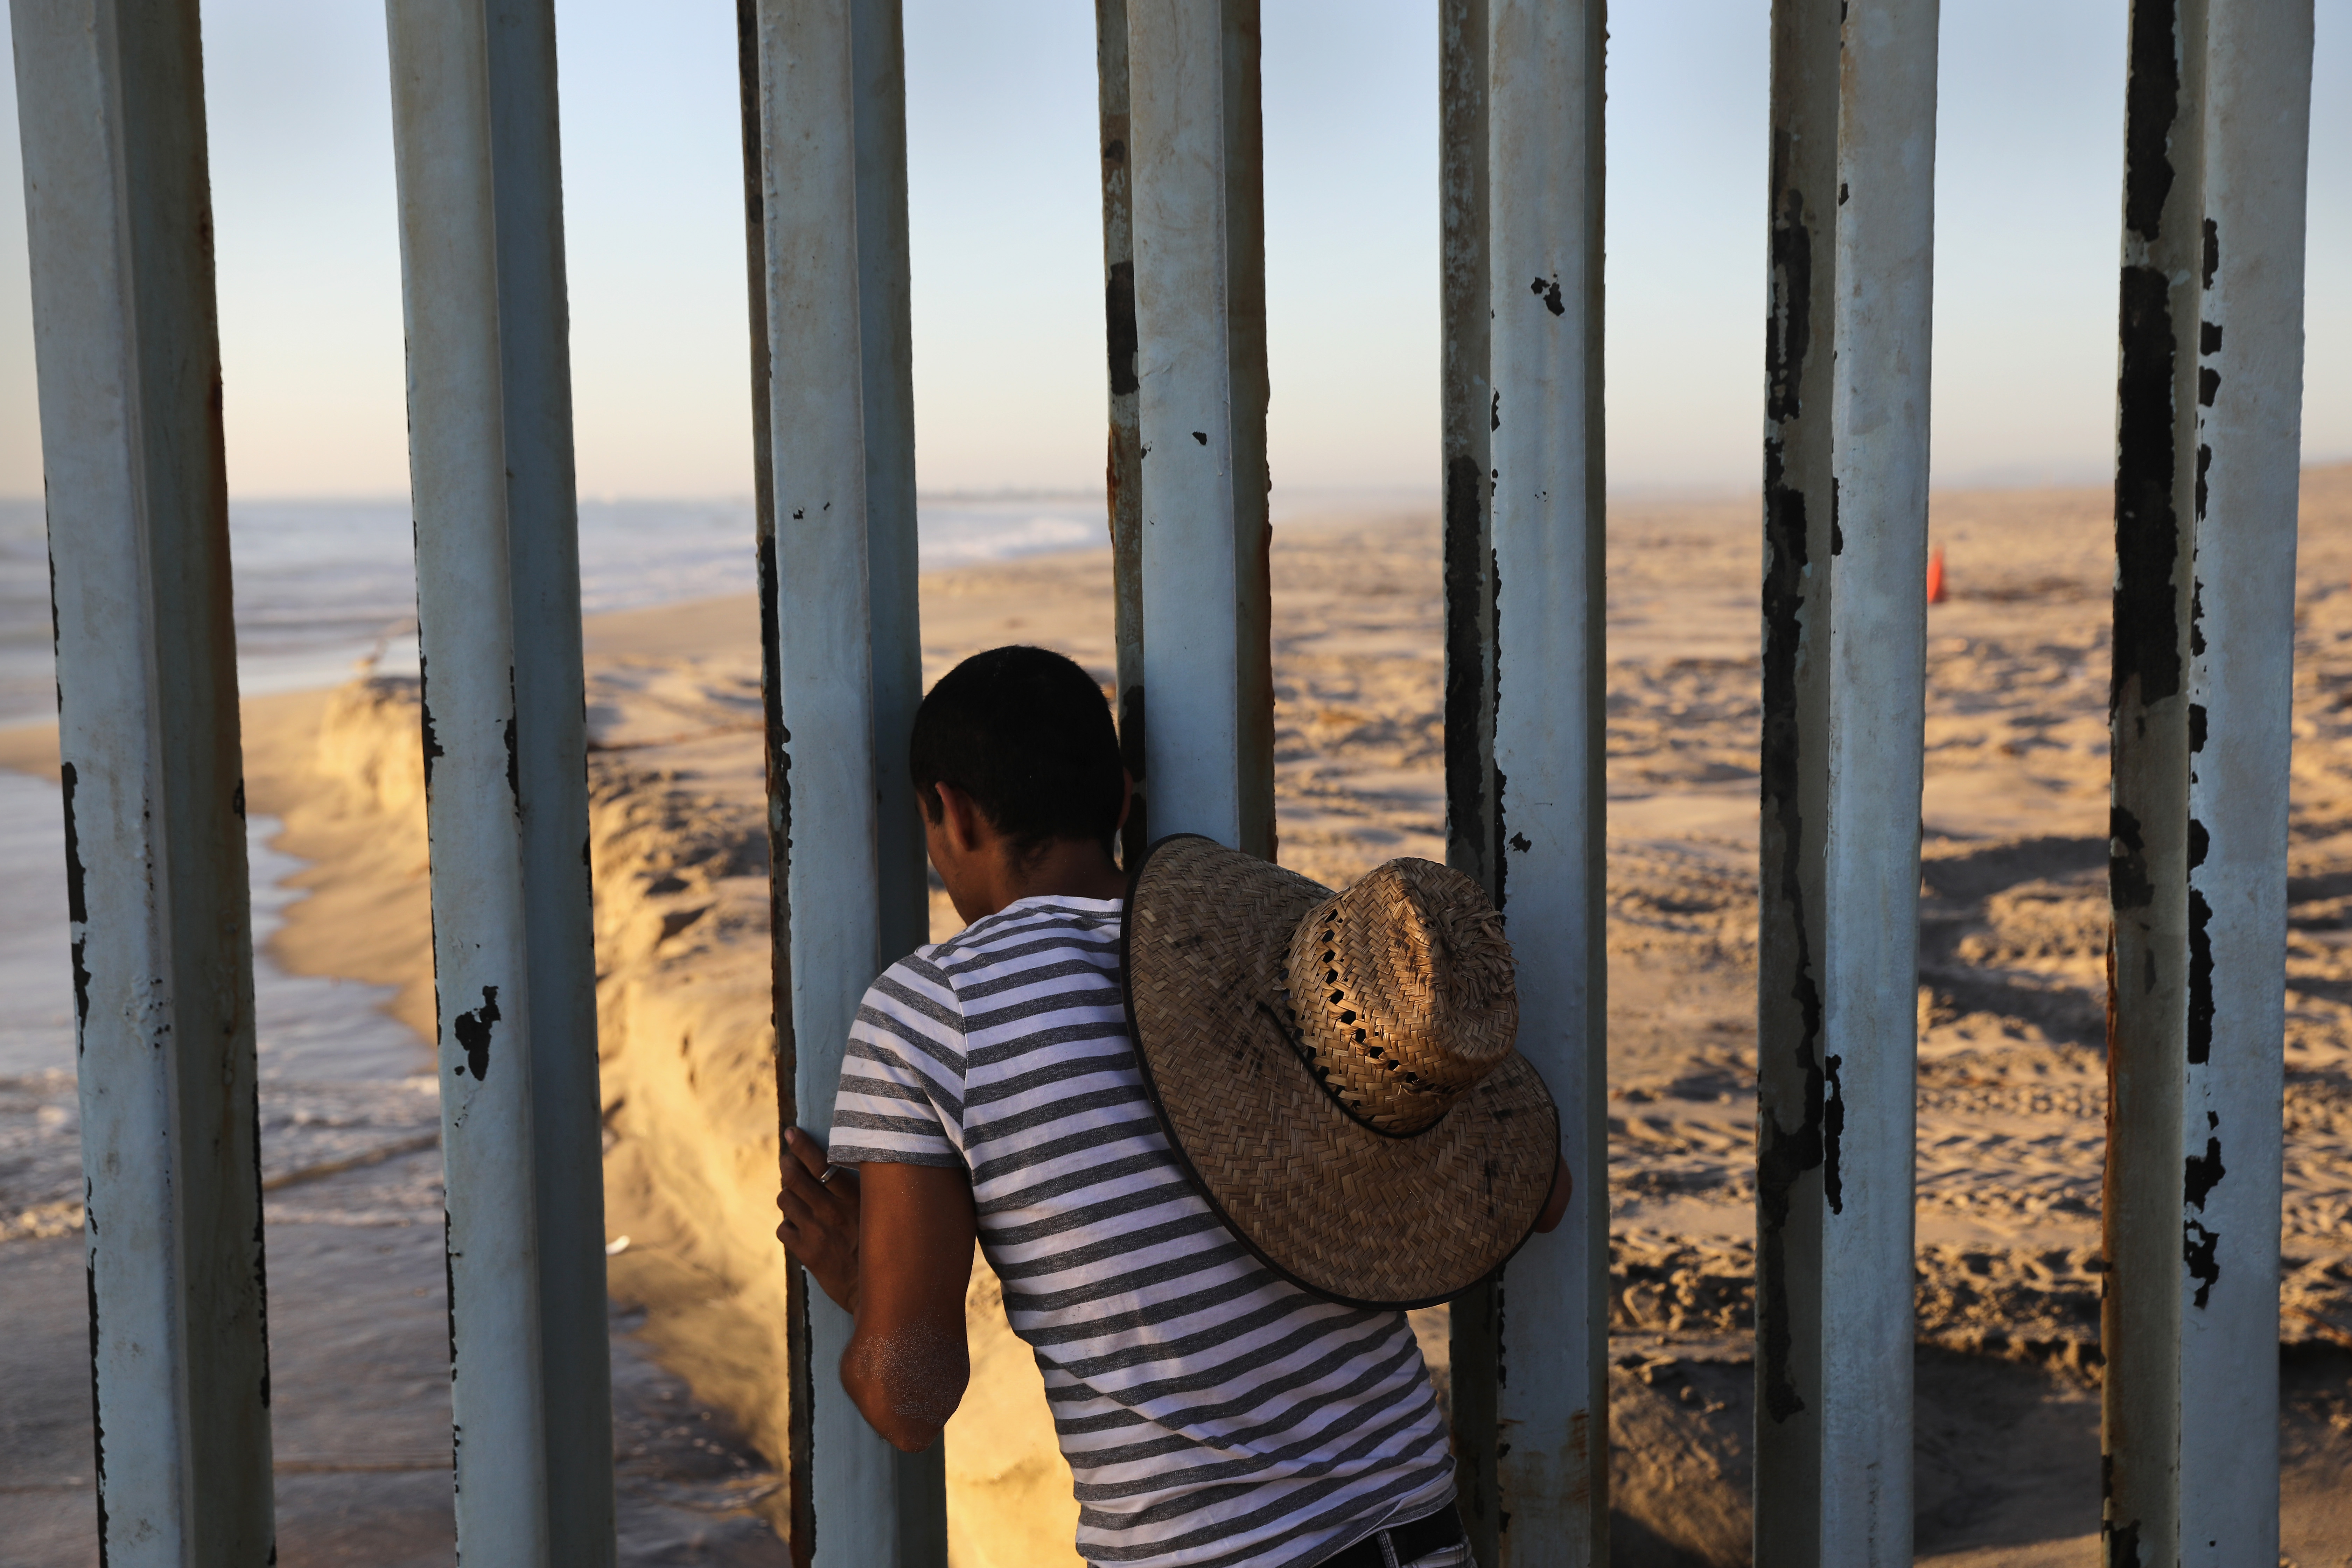 A man looks through the U.S.-Mexico border fence into the United States on Septt. 25, 2016 in Tijuana, Mexico.